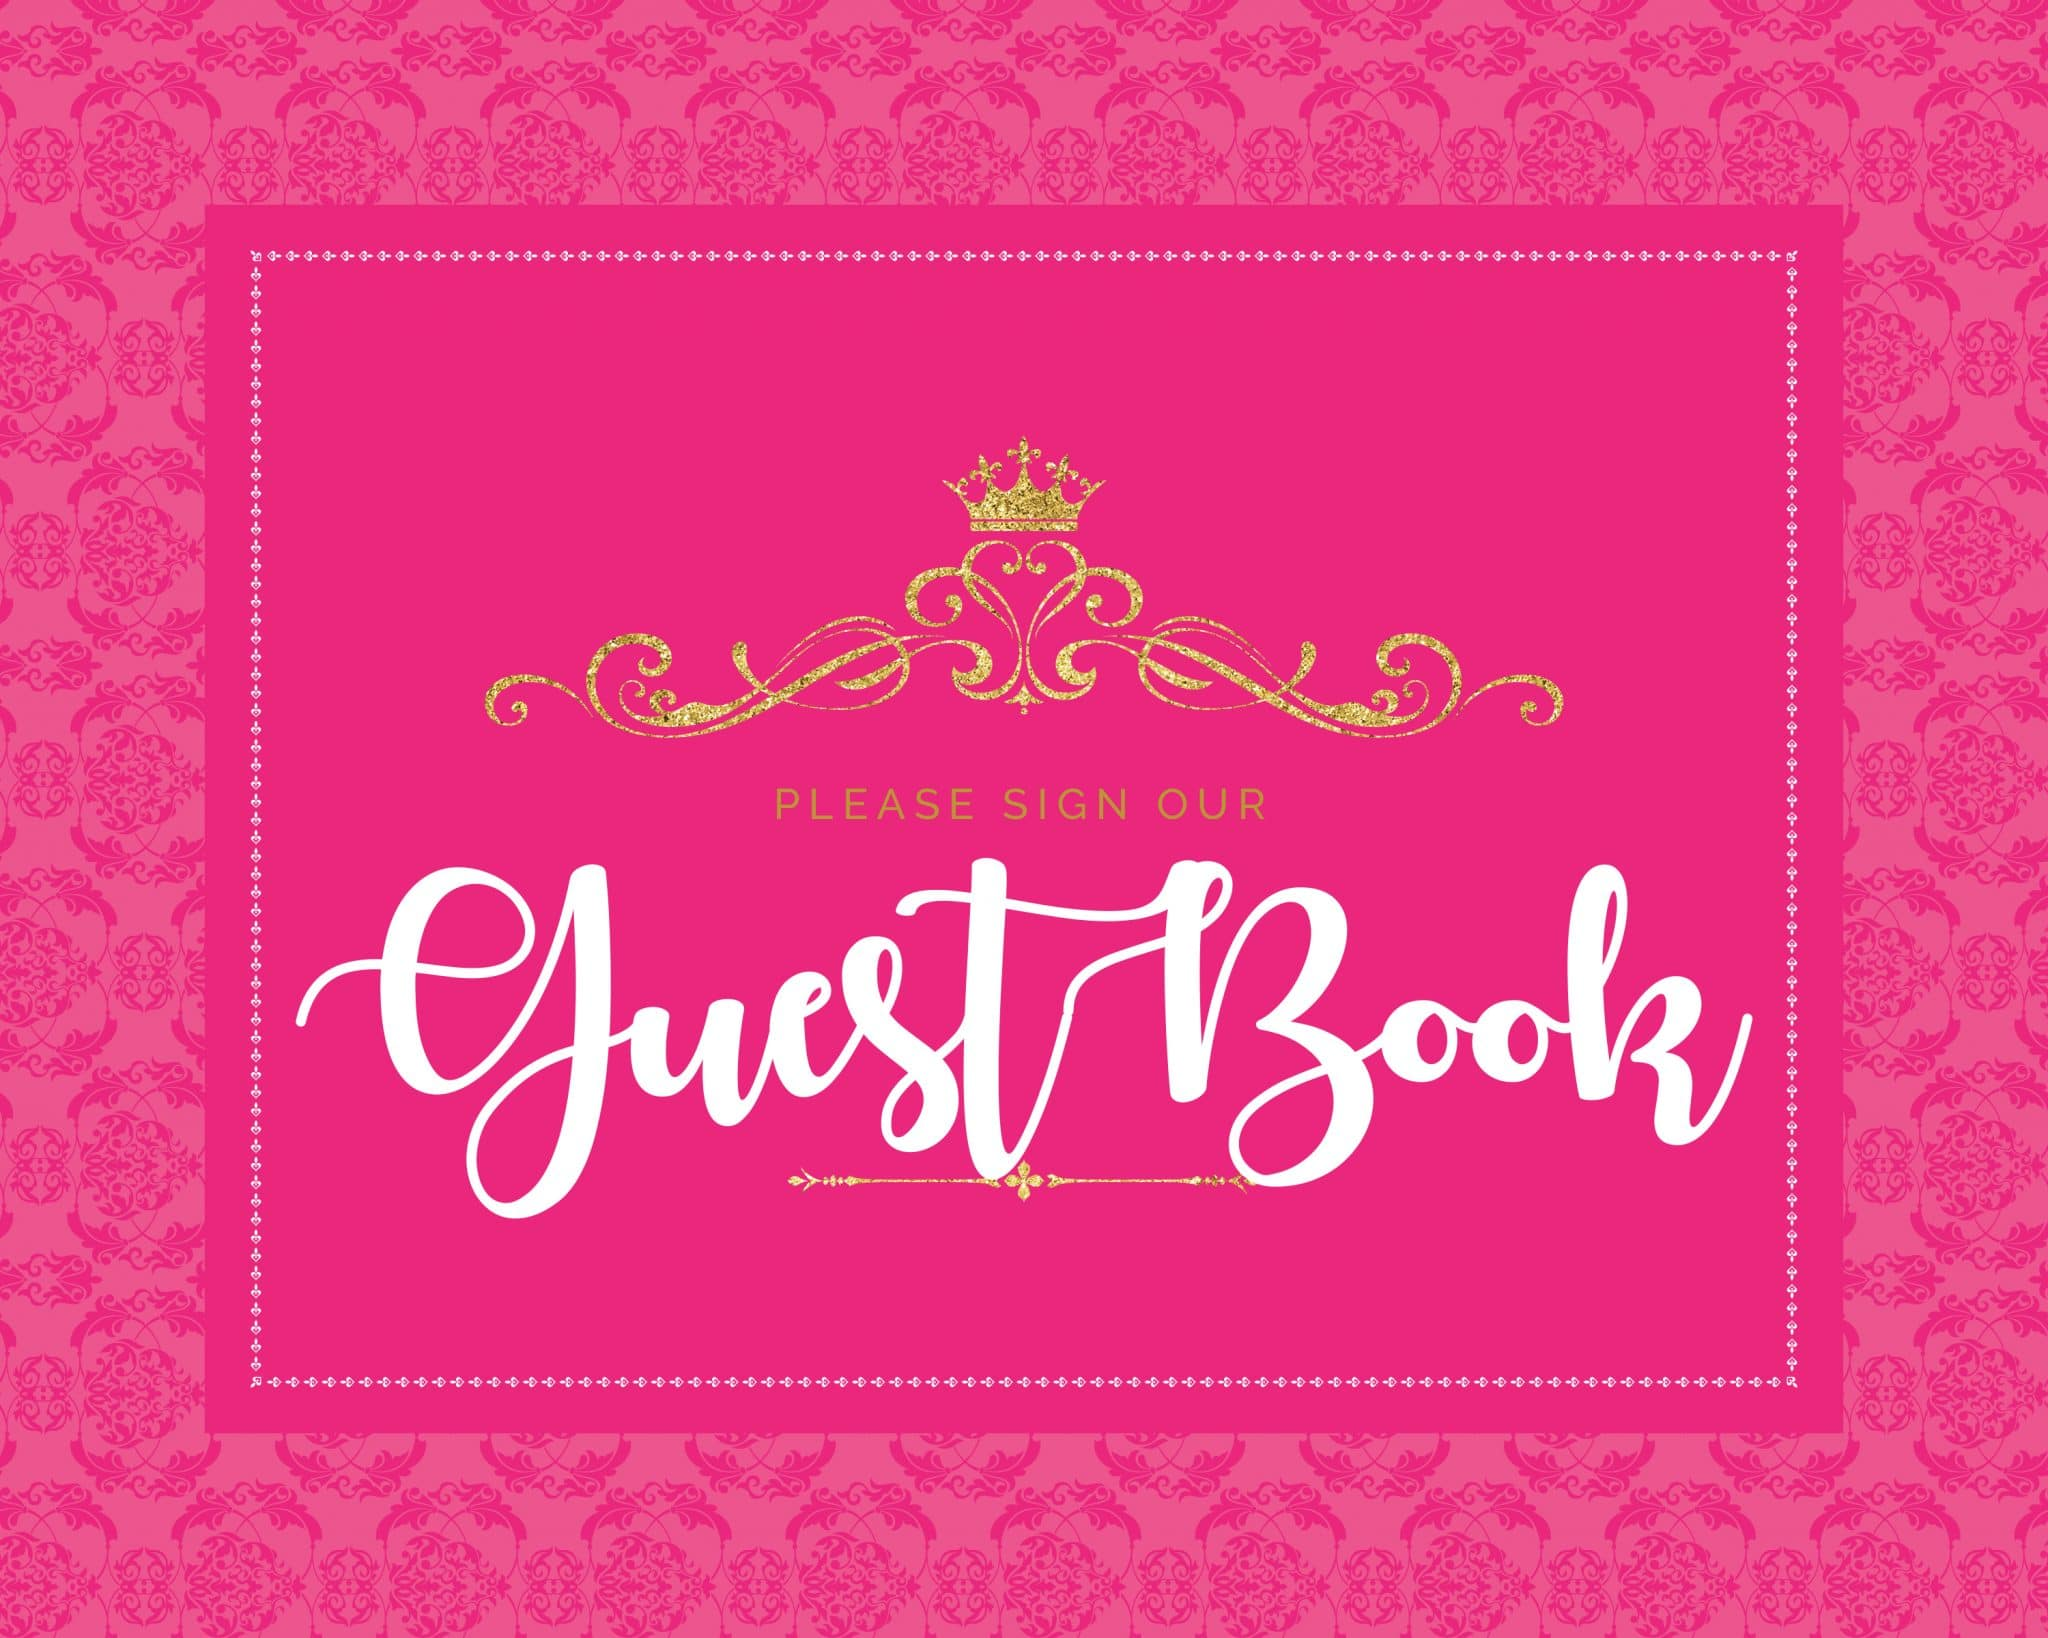 Please sign our guestbook princess theme